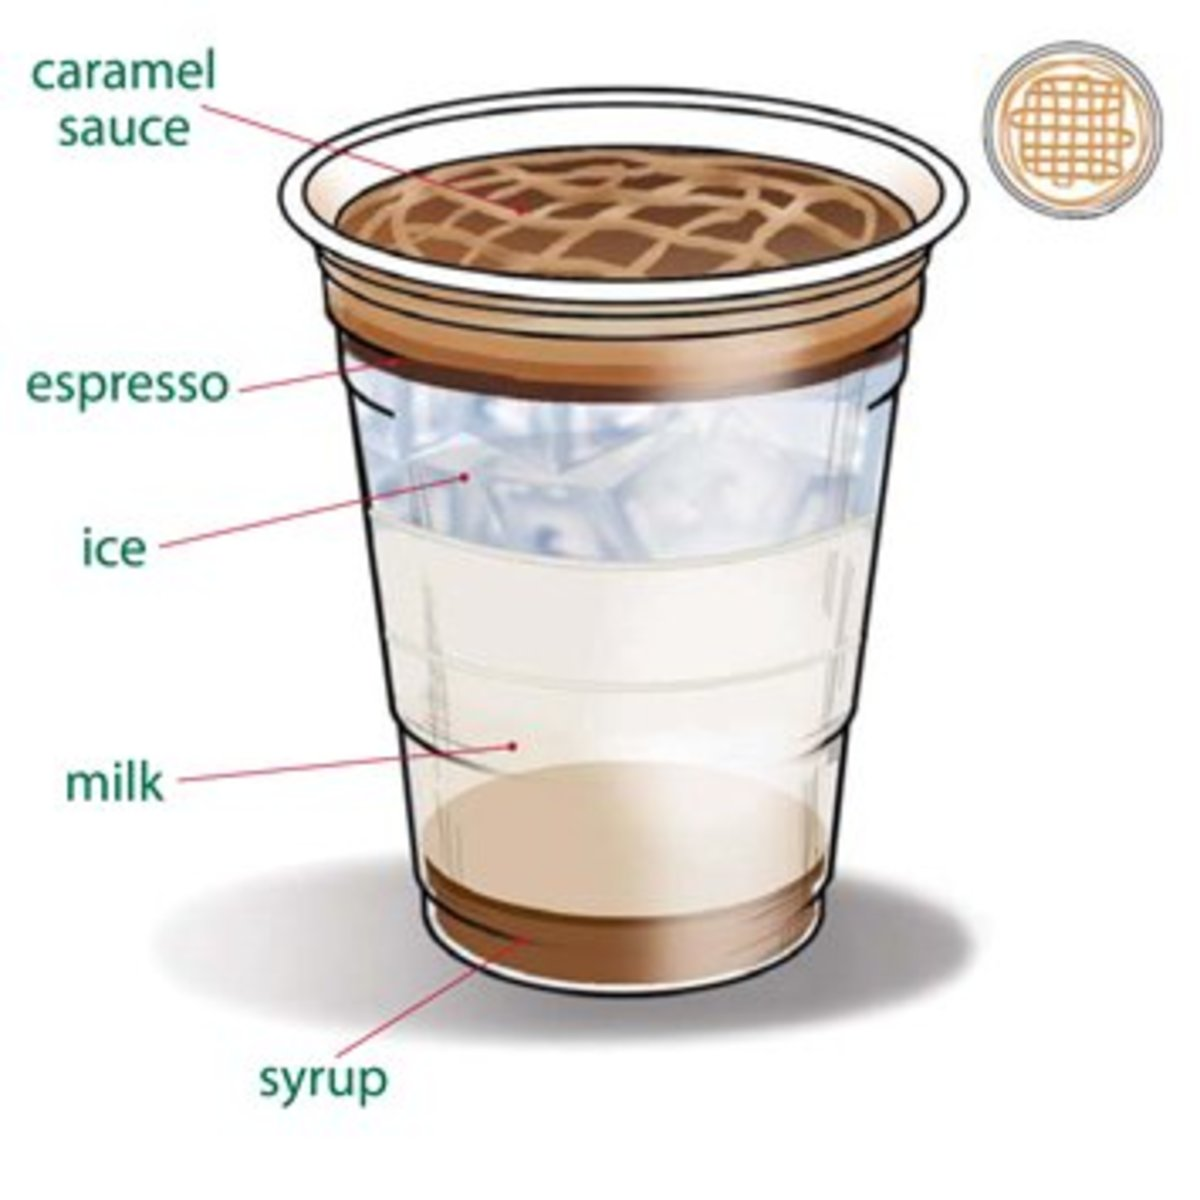 Full official recipe for the iced caramel macchiato.